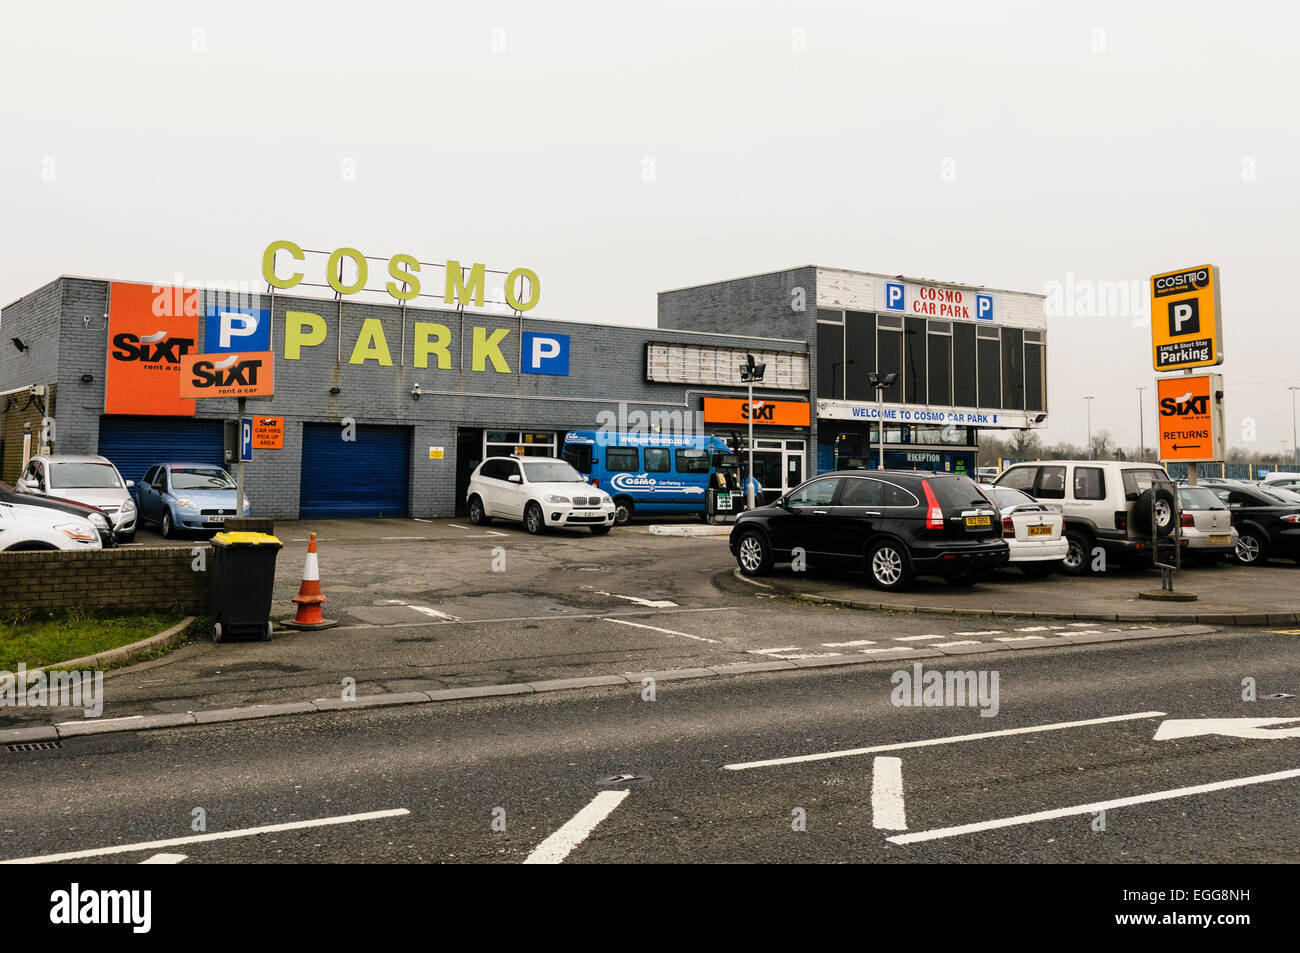 Mccausland Car Parking Belfast International Airport